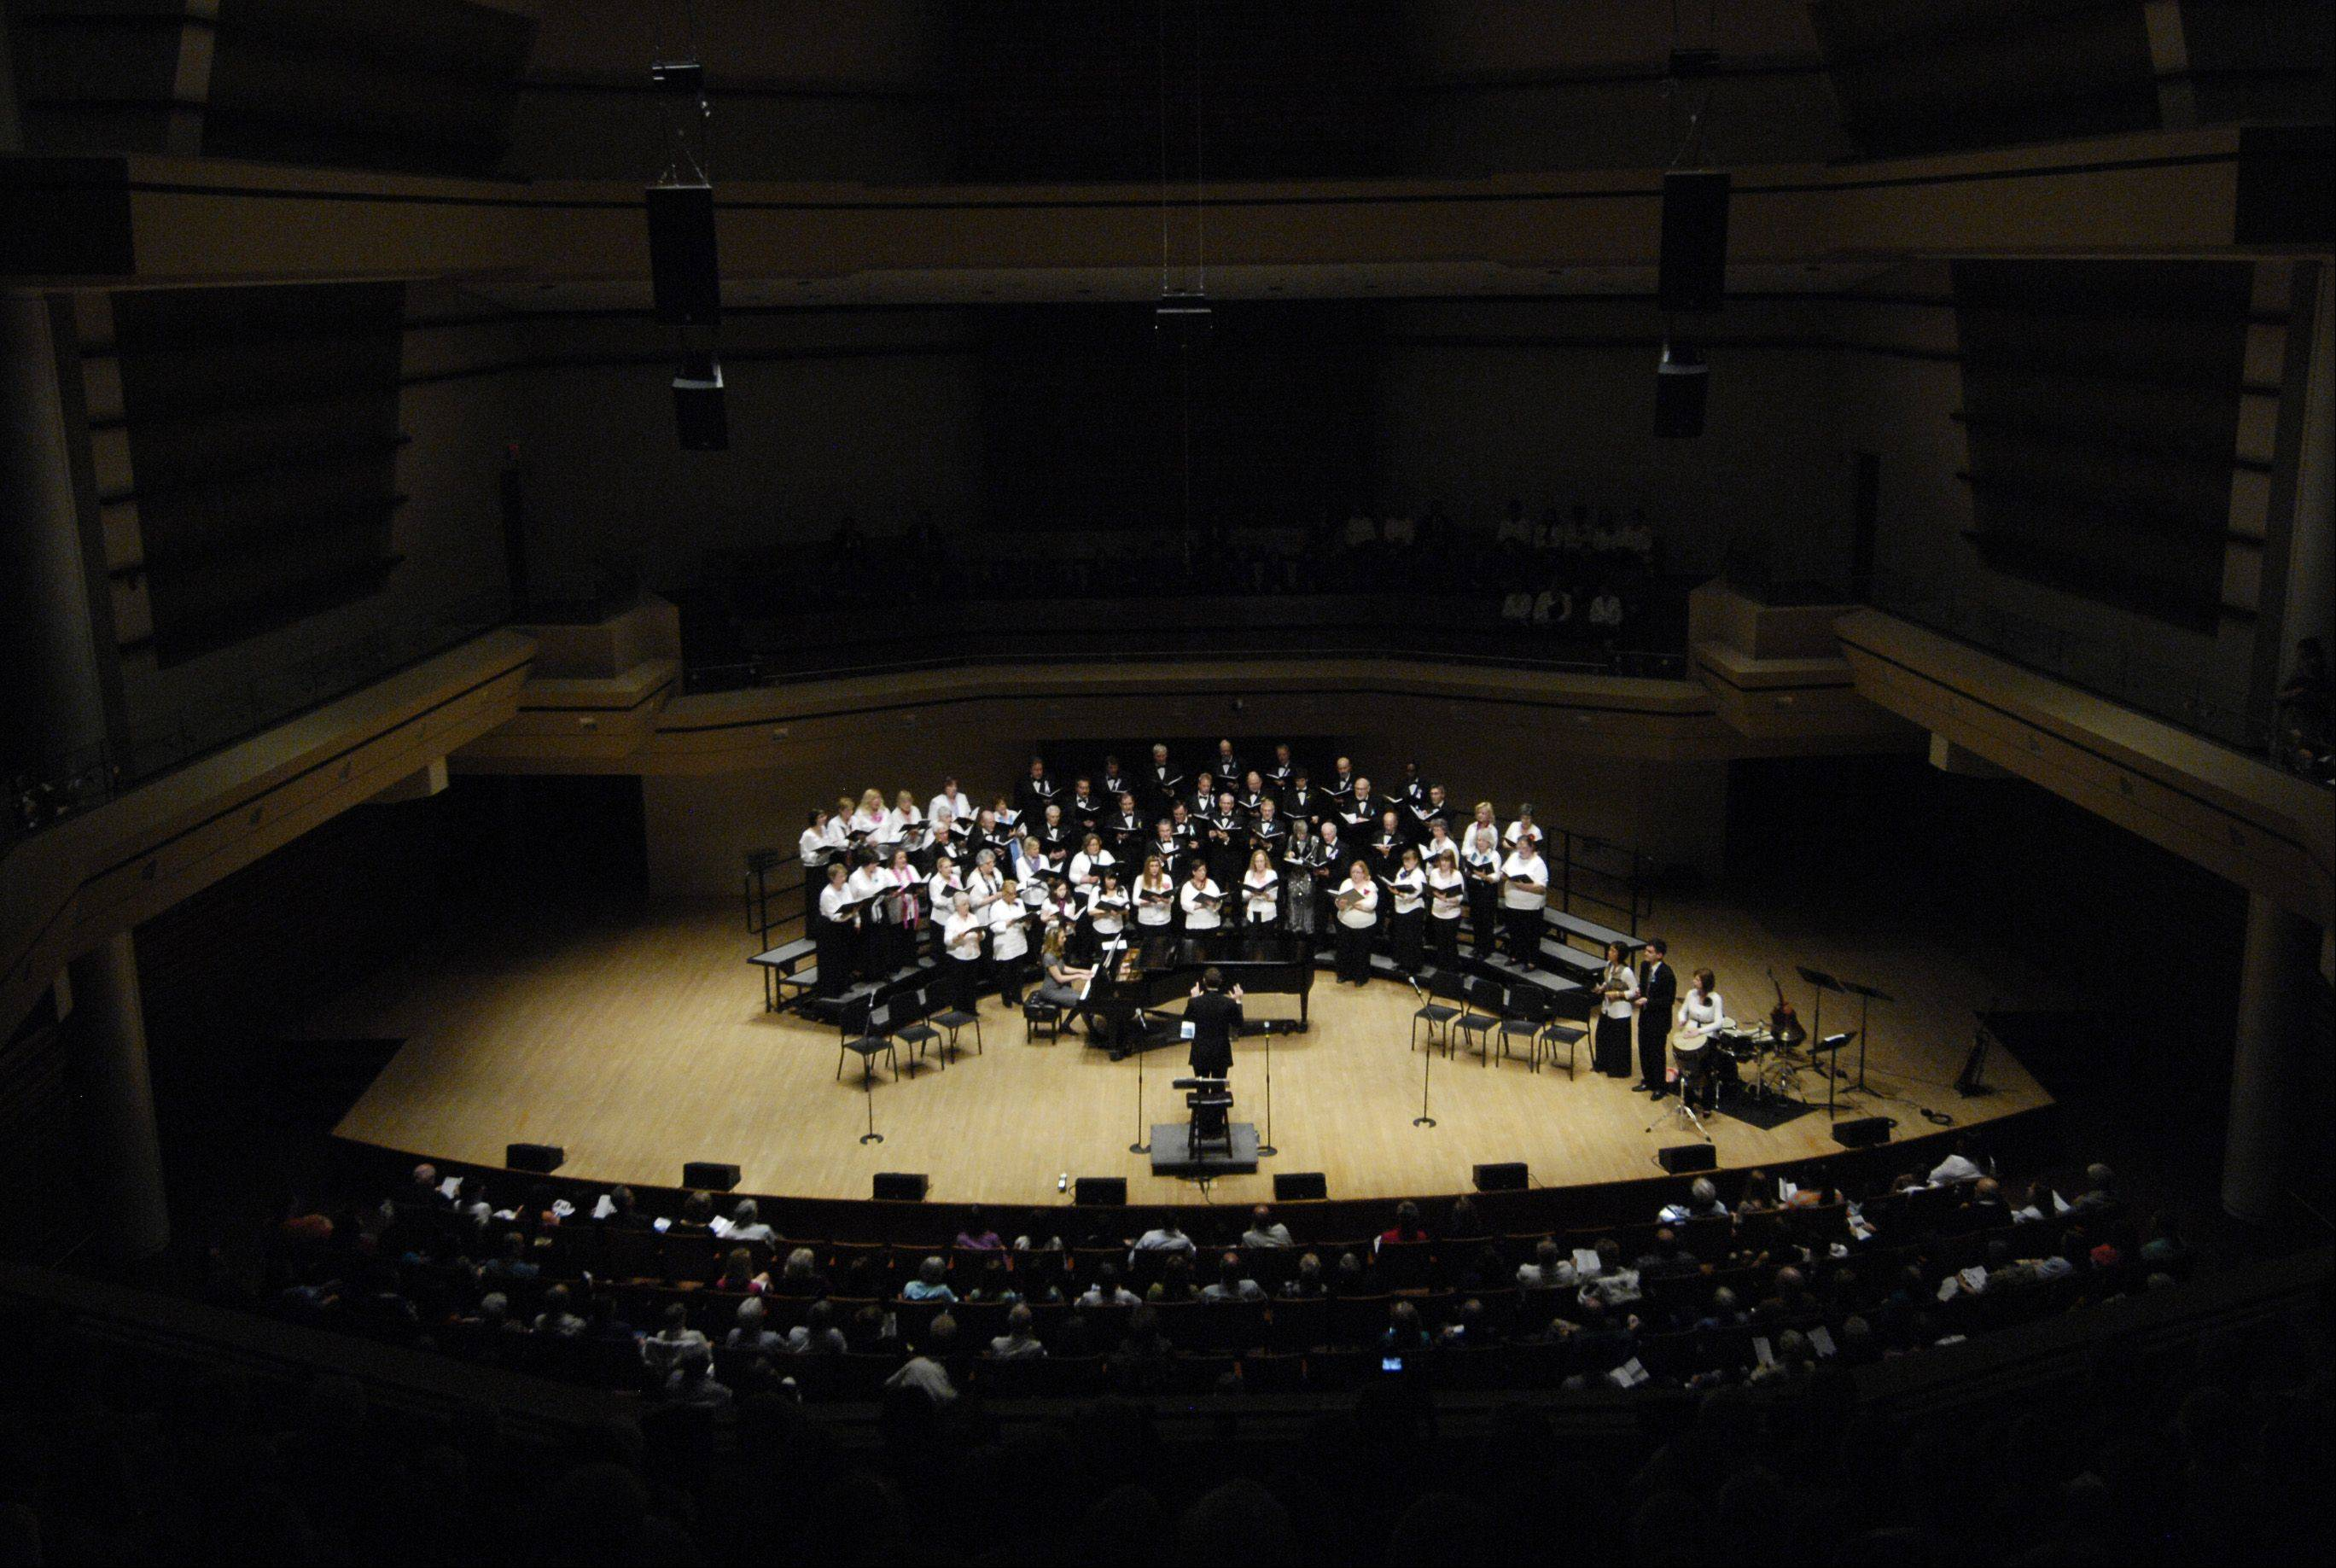 The Voices of Hope choir perform at the Wentz Concert Hall at North Central College in Naperville Sunday.